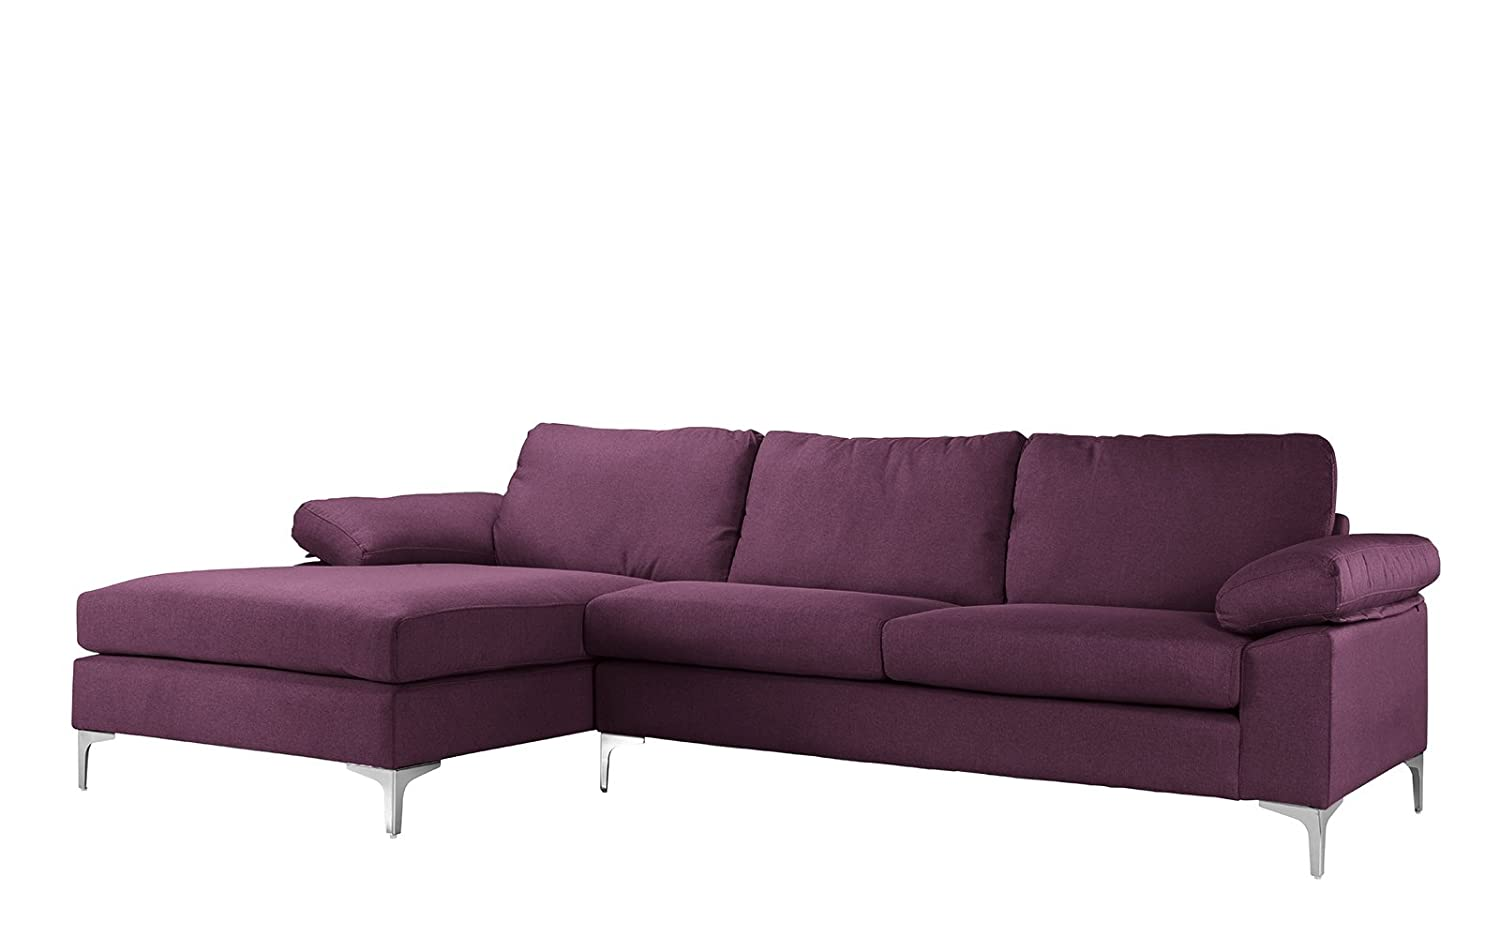 sofa and for about lounge luxury sofas intended most chaise double extra furniture recent remodel best wide lounges